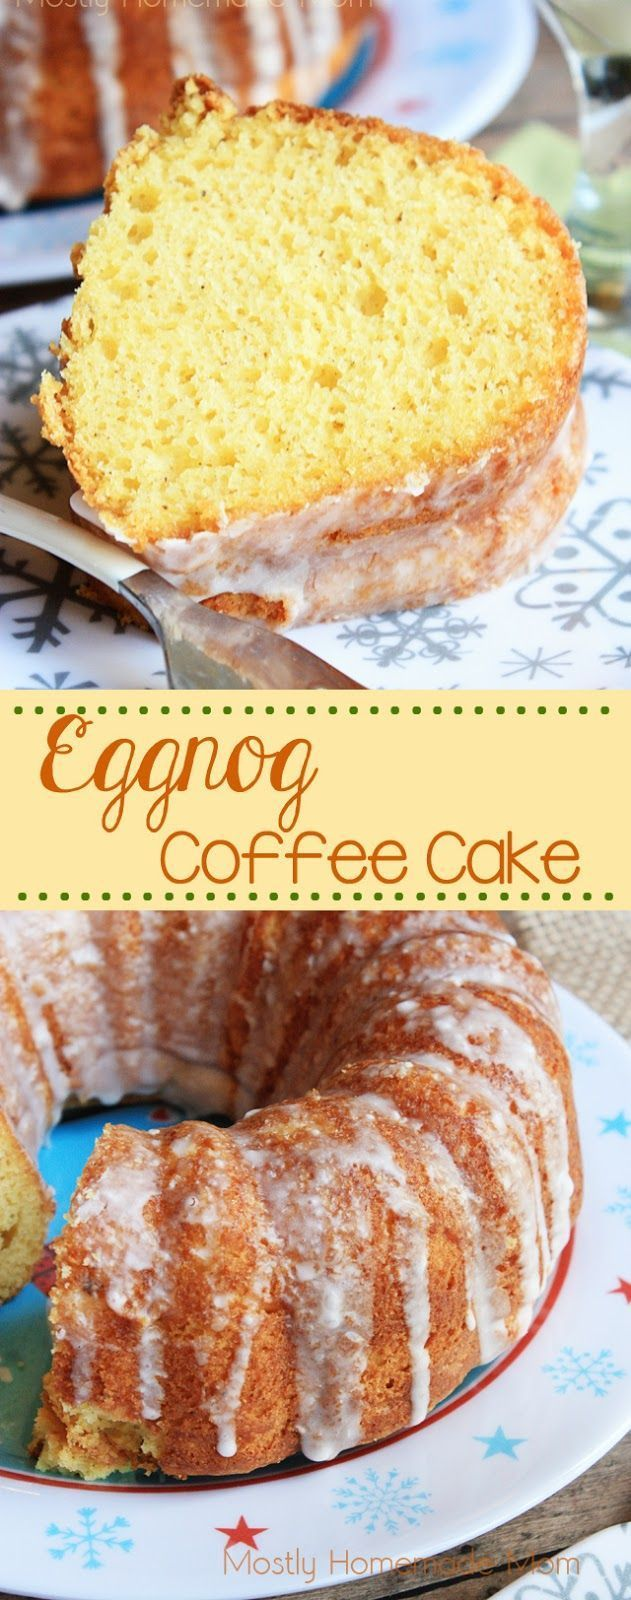 Eggnog Coffee Cake - Yellow cake mix baked with eggnog in the batter, and topped with a sweet eggnog glaze. The perfect holiday breakfast treat! #ShareYourDelight #ad